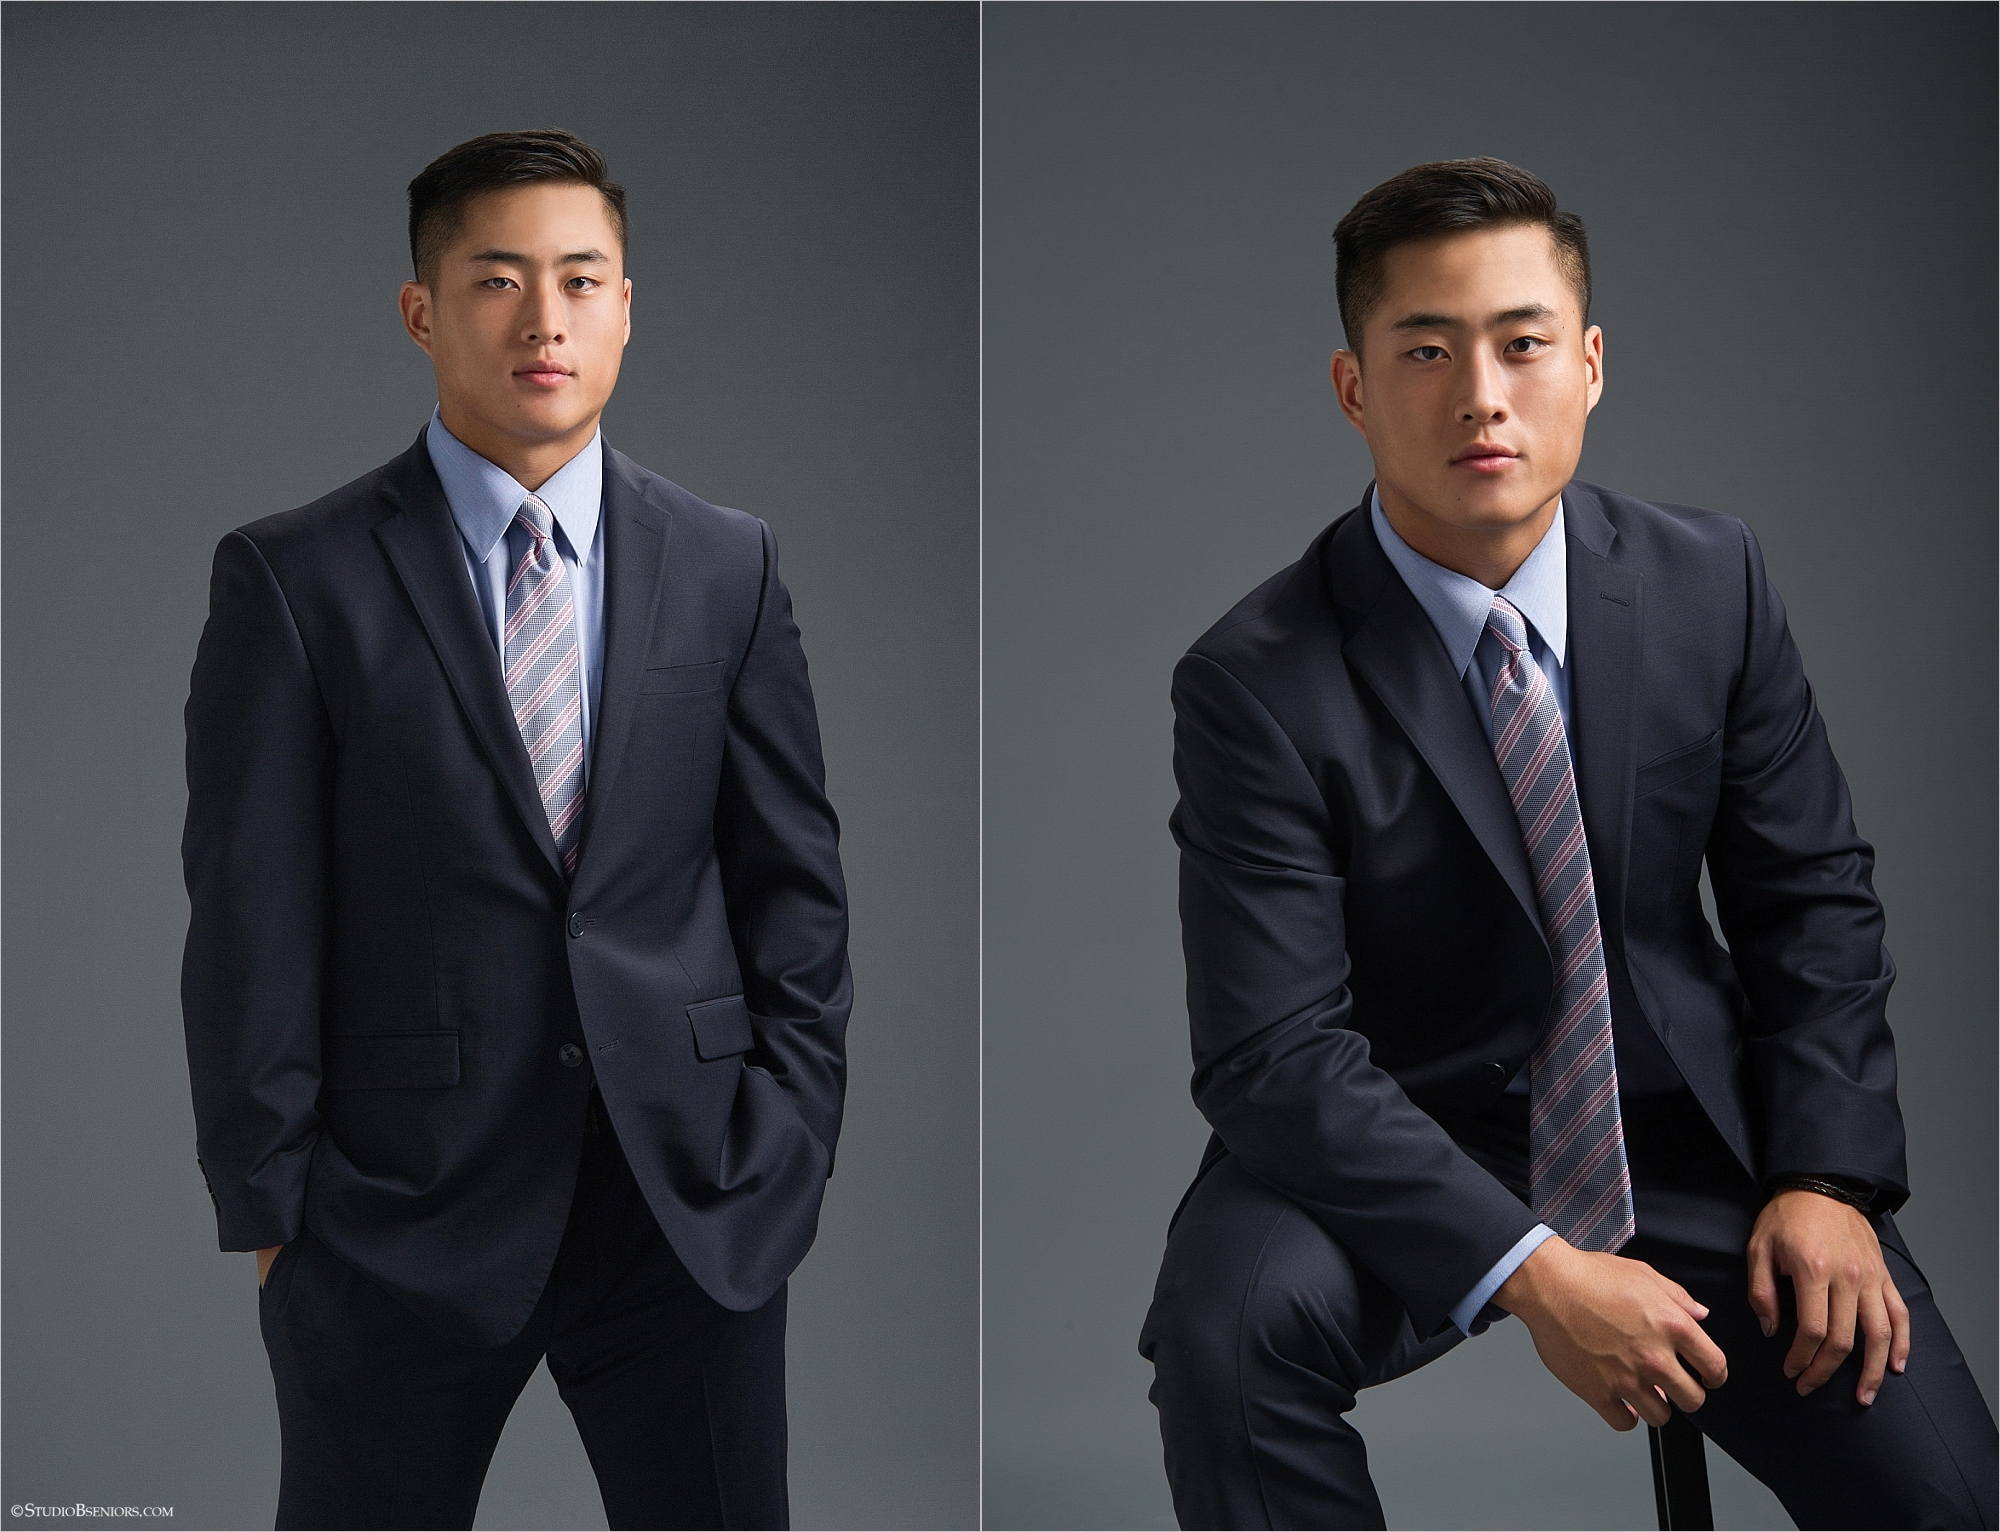 Studio B Portraits senior pictures of handsome Asian guy in suit and tie.jpg